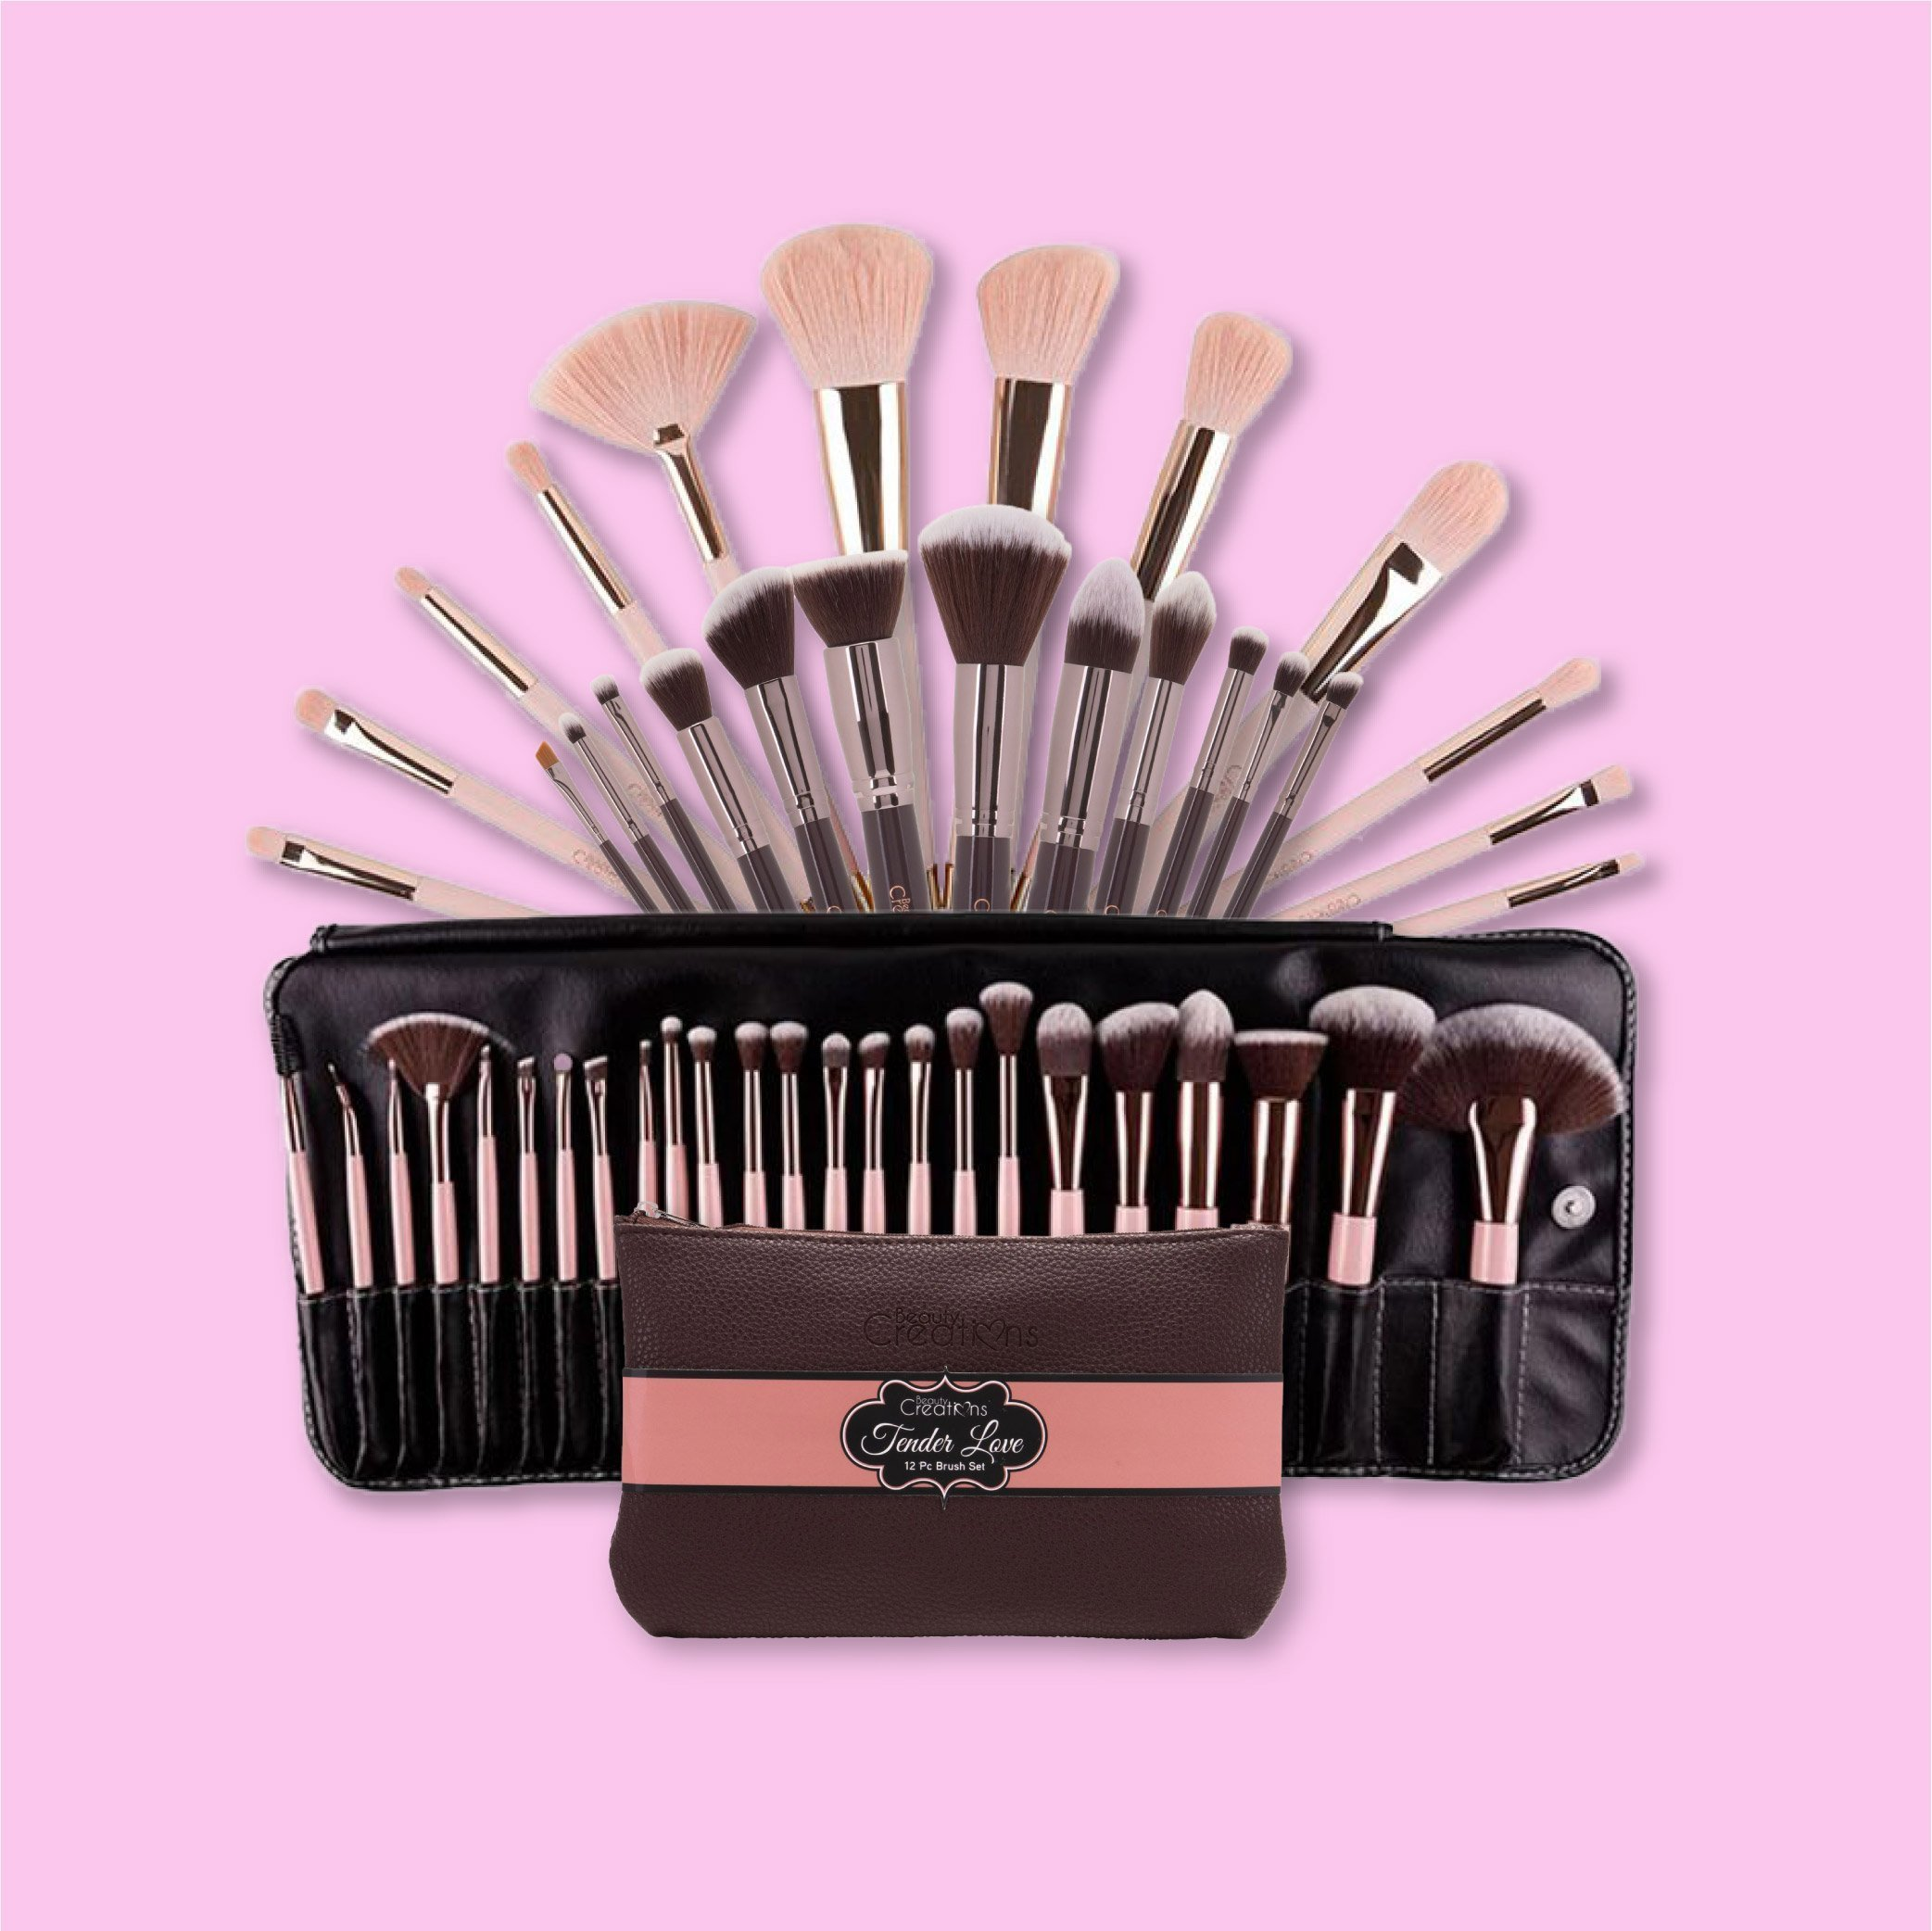 One closed bag of beauty Creations Tender Love brushes with an open one behind it on a pink background